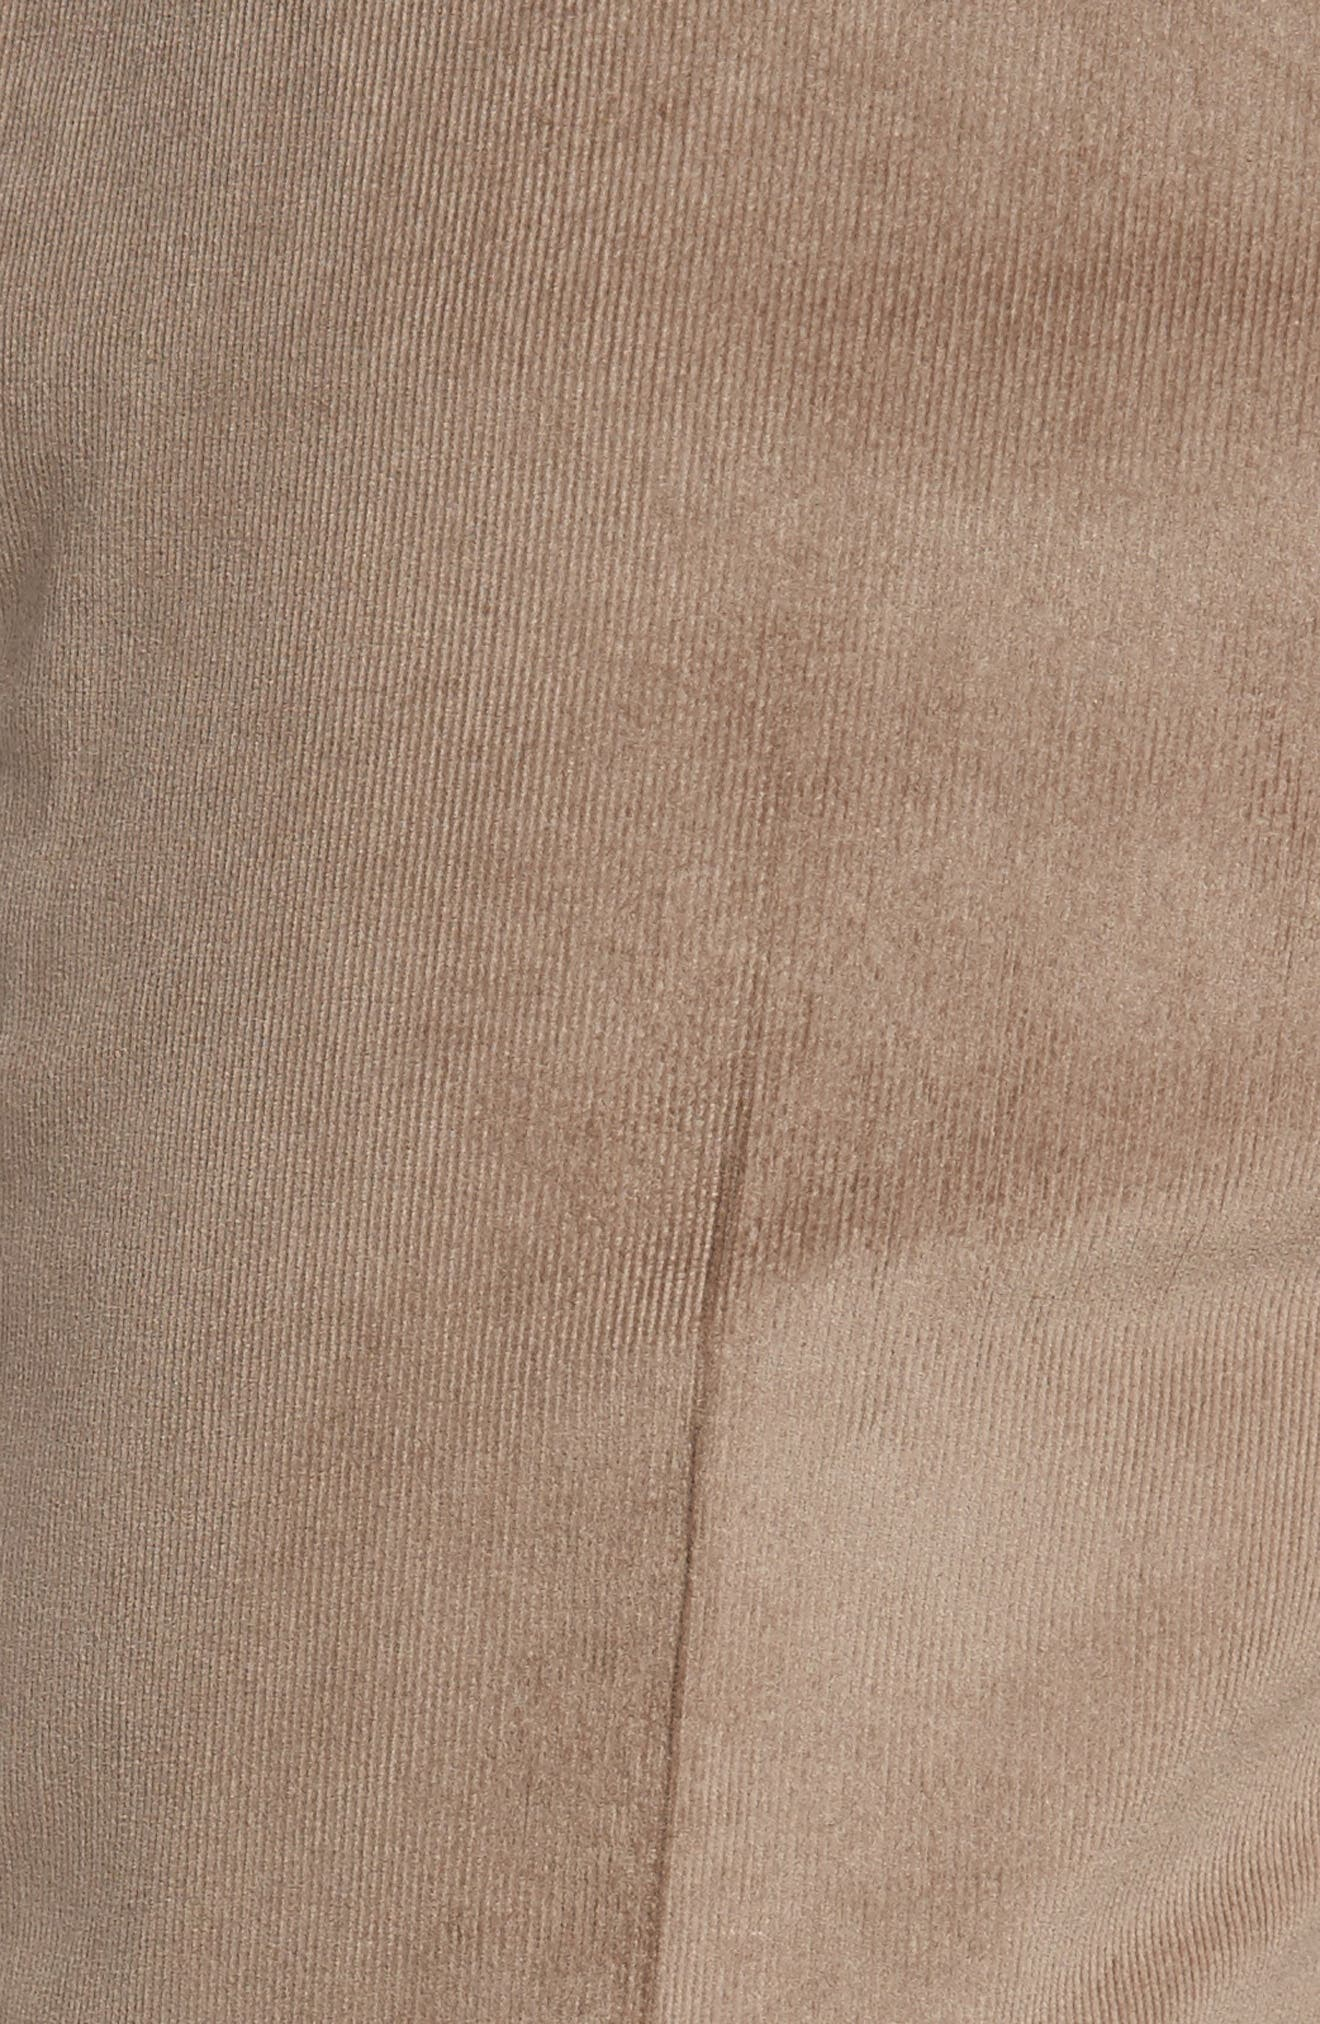 Corduroy Pants,                             Alternate thumbnail 5, color,                             Tan